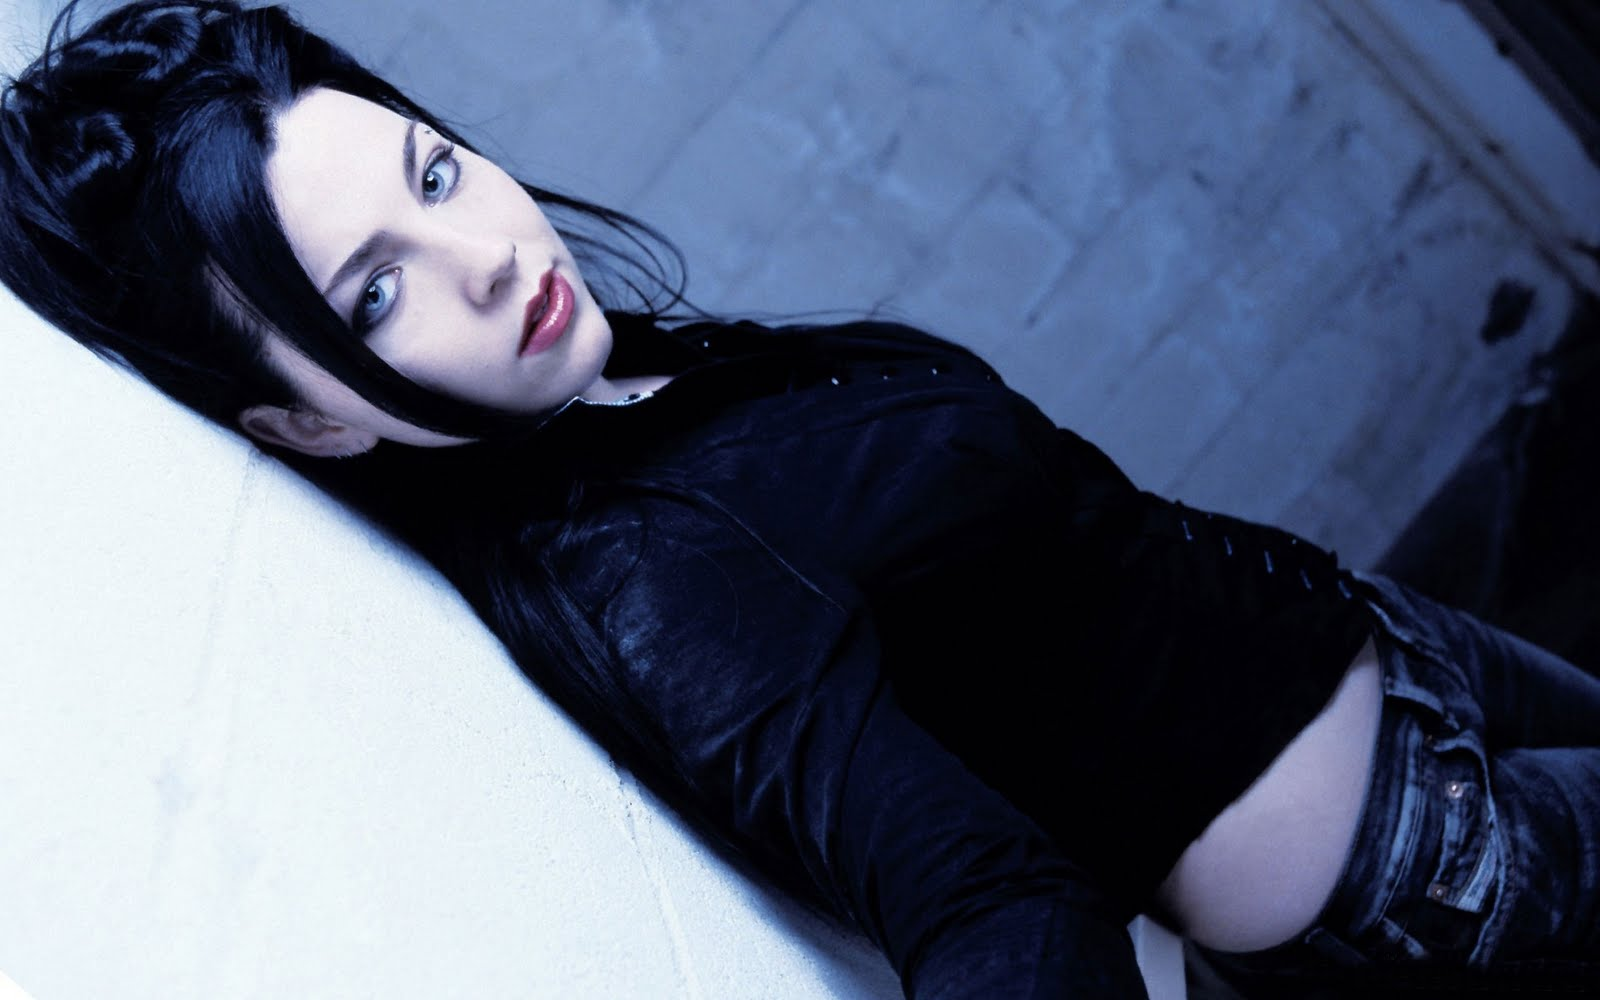 from Jayvion hot sexy pictures of amy lee